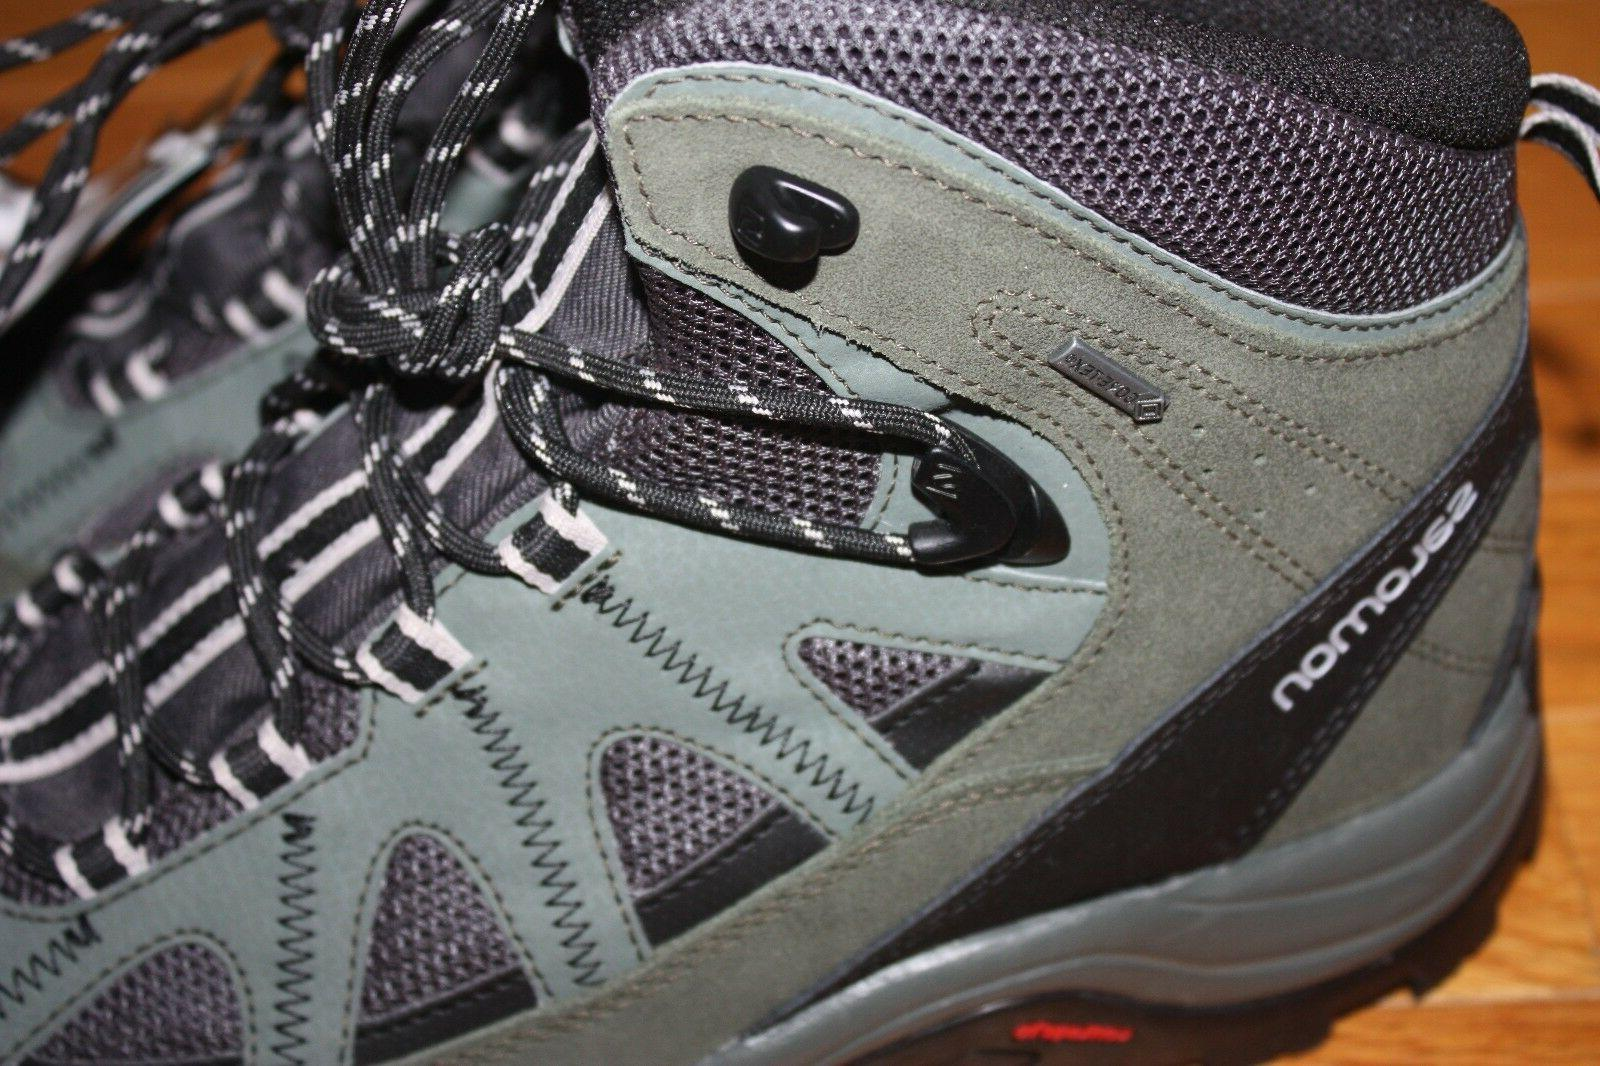 New In Salomon Authentic LTR GTX Backpacking Boots US FAST